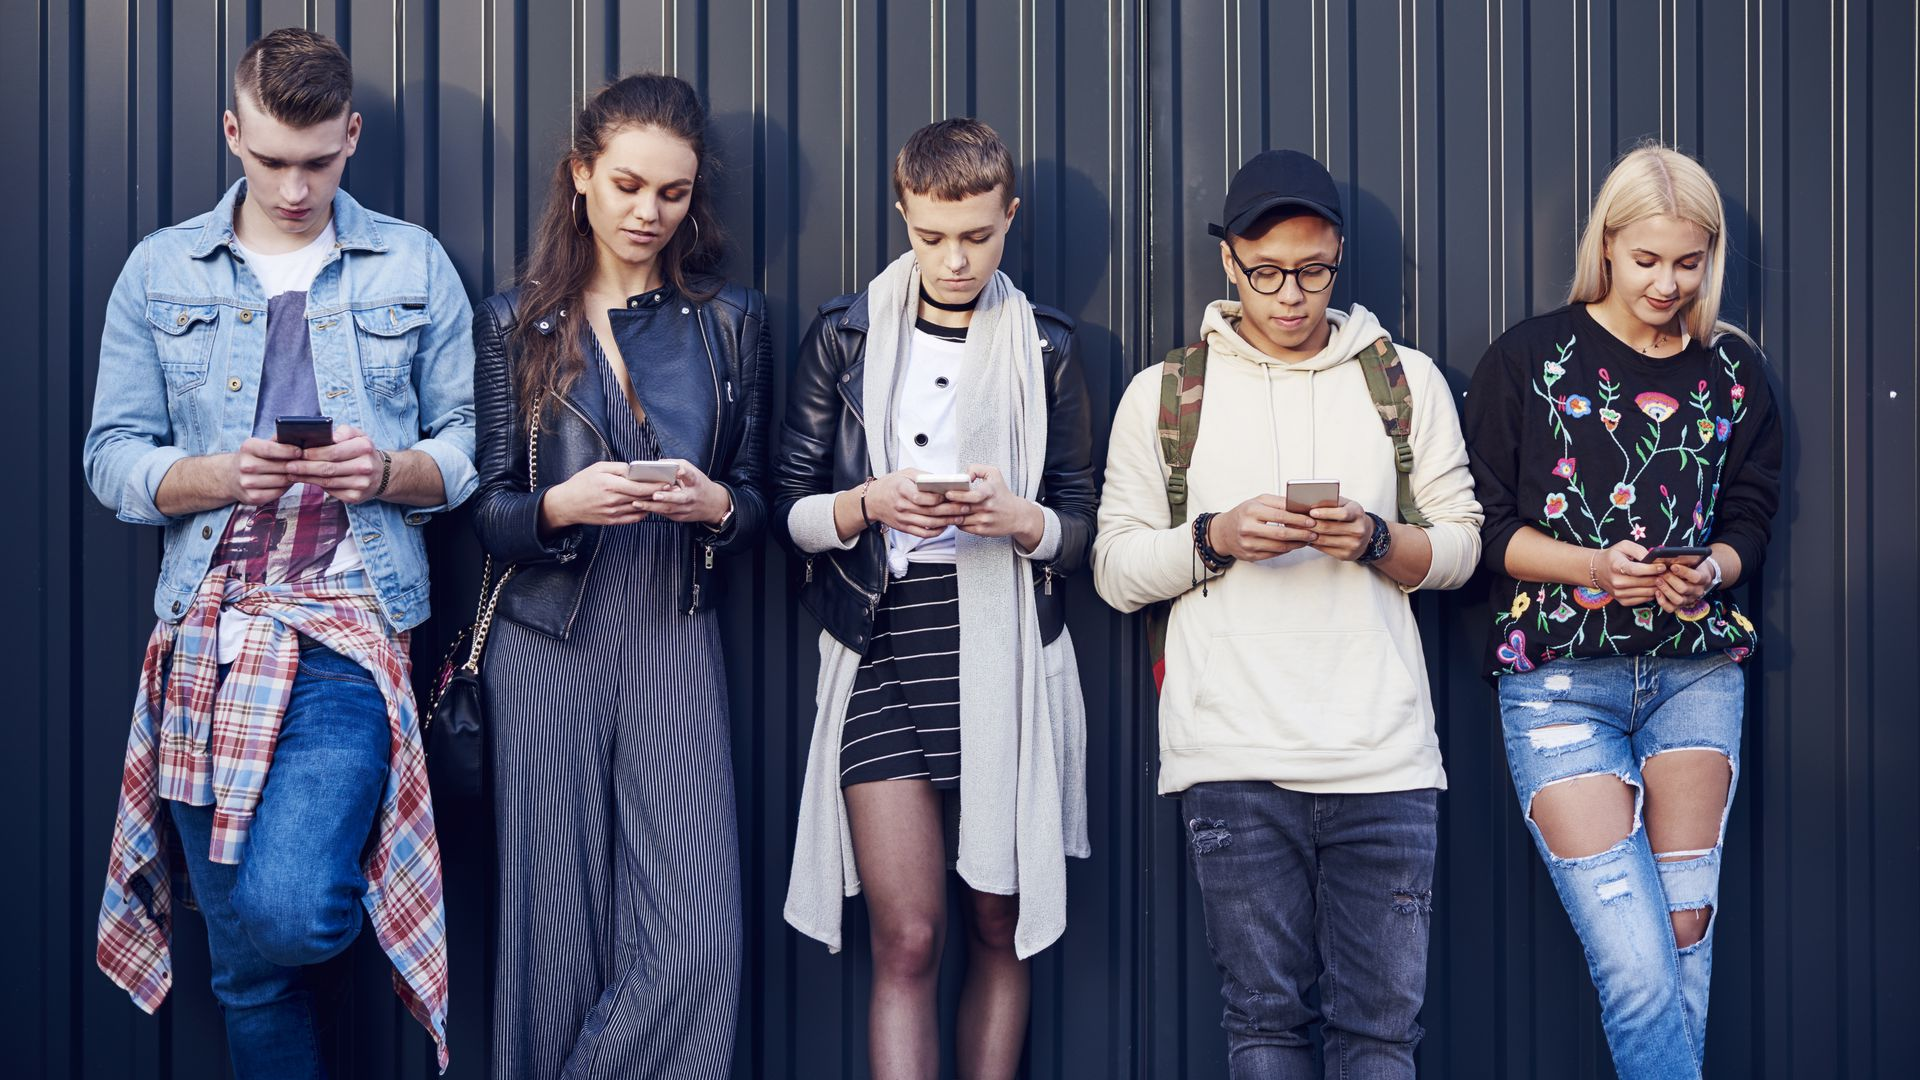 In this image, five fashionably dressed young adults look at their phones while standing in a line against a wall.